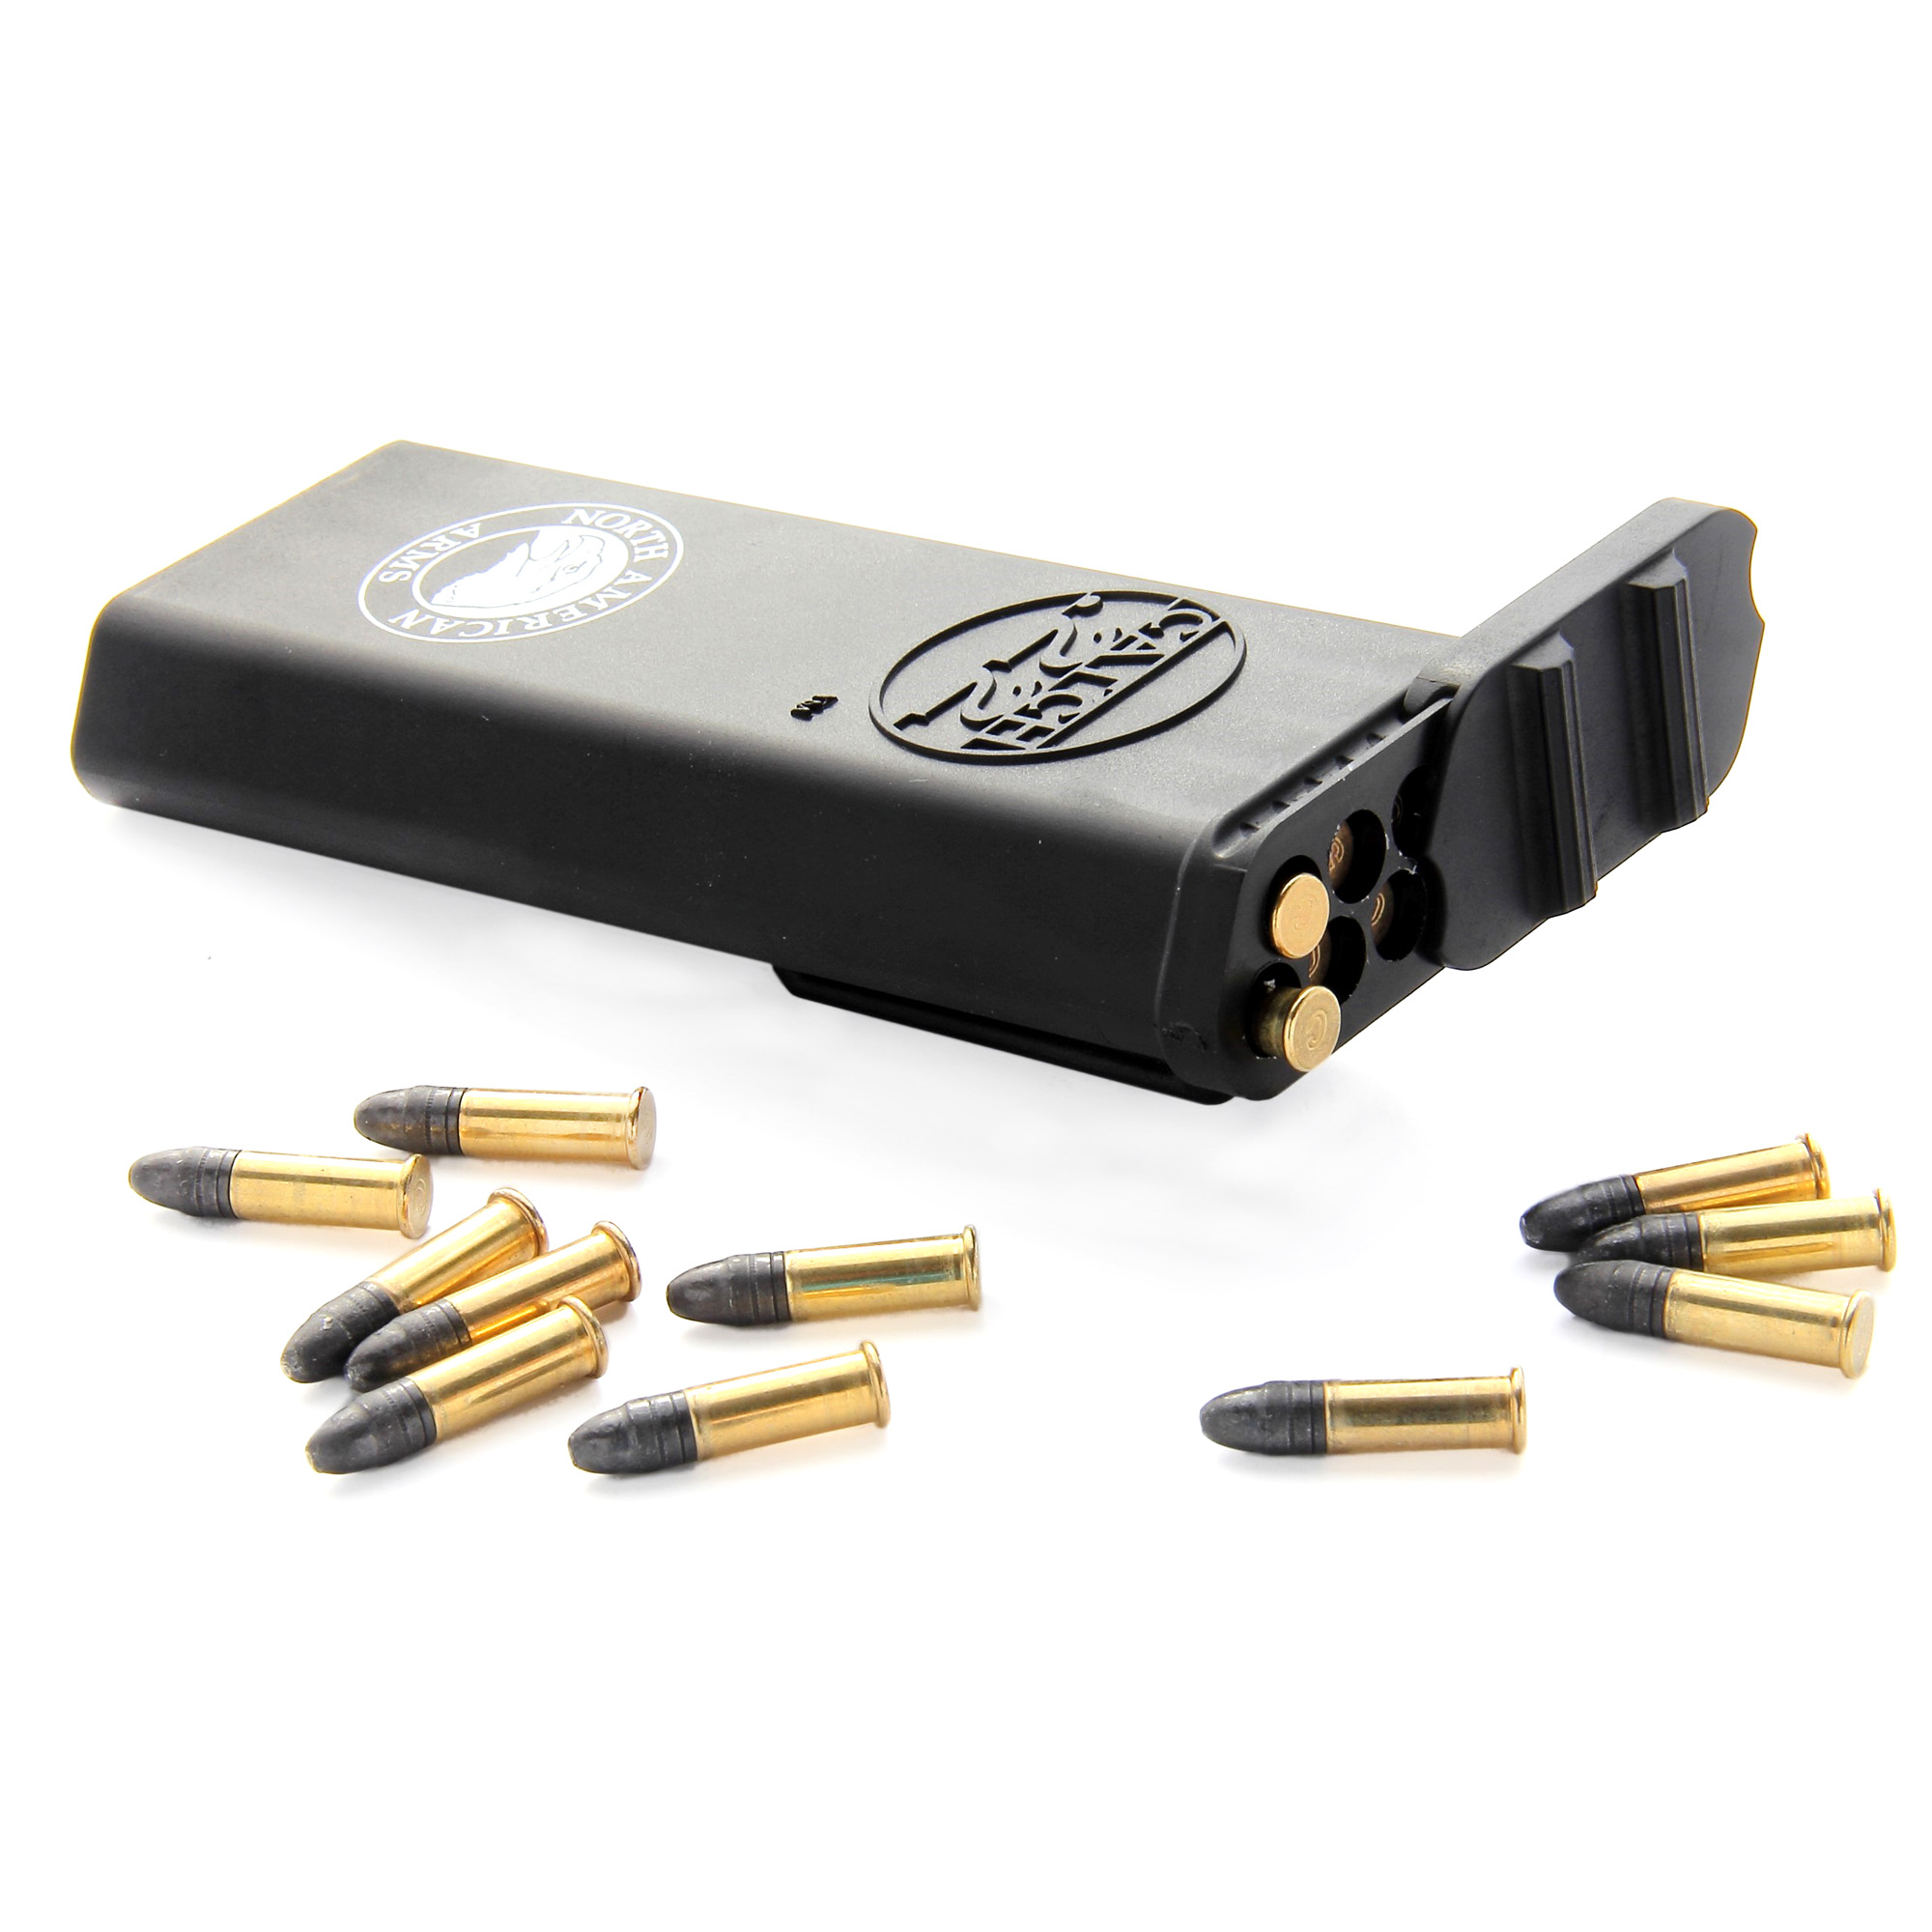 "North American Arms Catch 22 Ammo Carrier Belt Clip"" Holds 50 Rounds of .22 Long Rifle"" 70 Rounds of .22 Short or 30 Rounds of .22 Magnum CATCH22 ammunition."